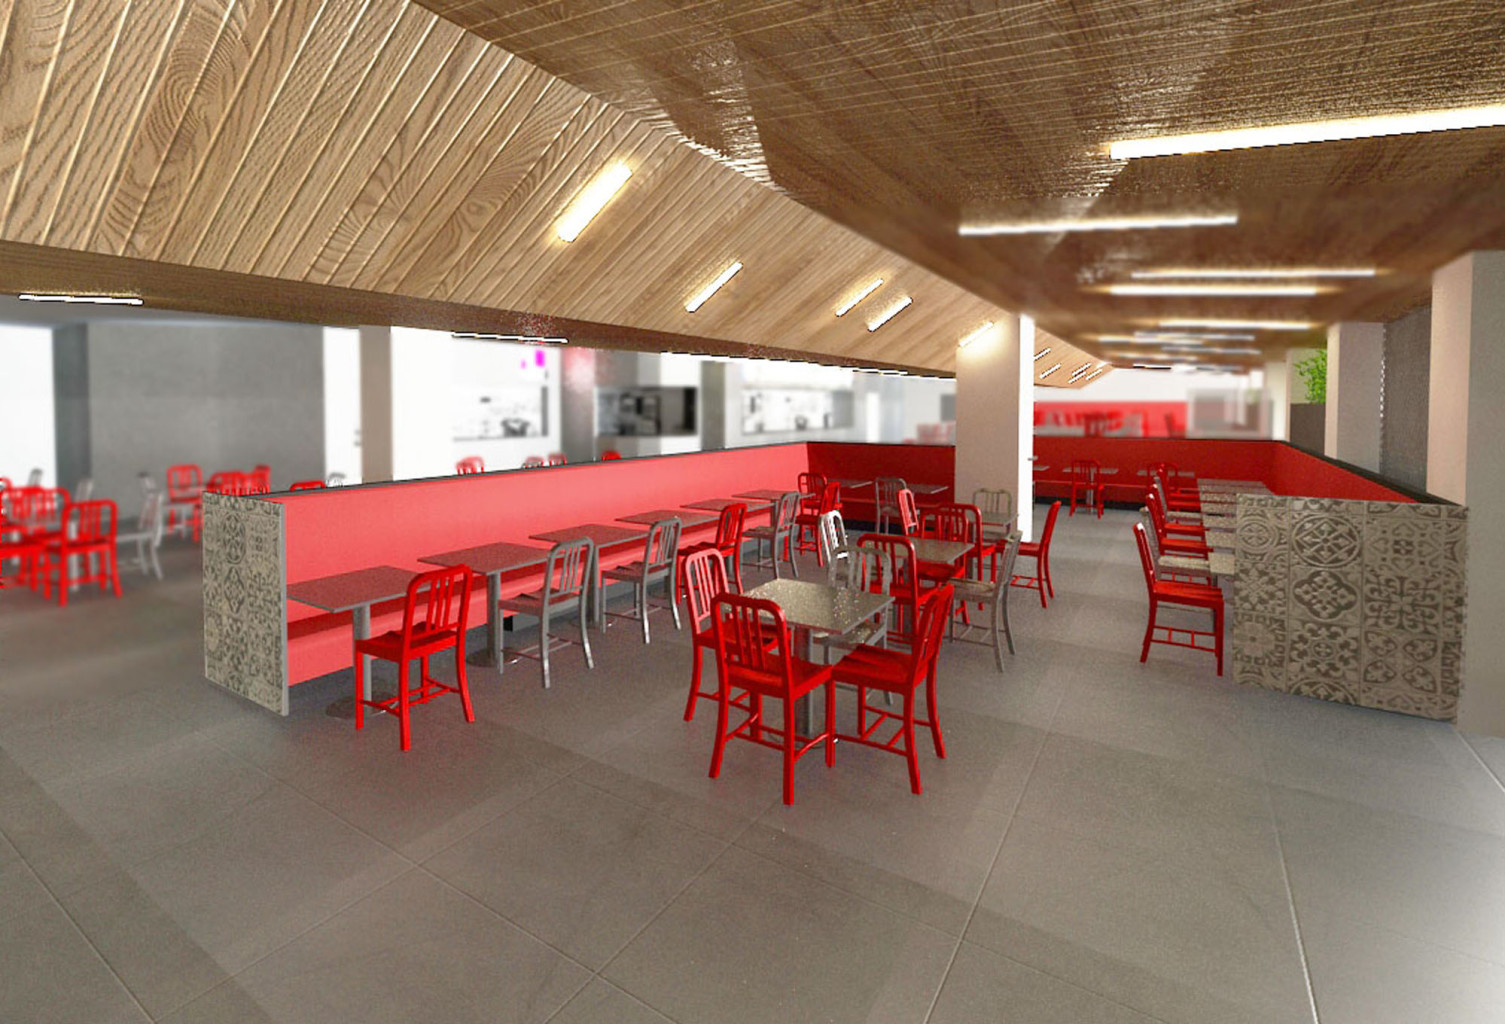 mia food court malta render 2